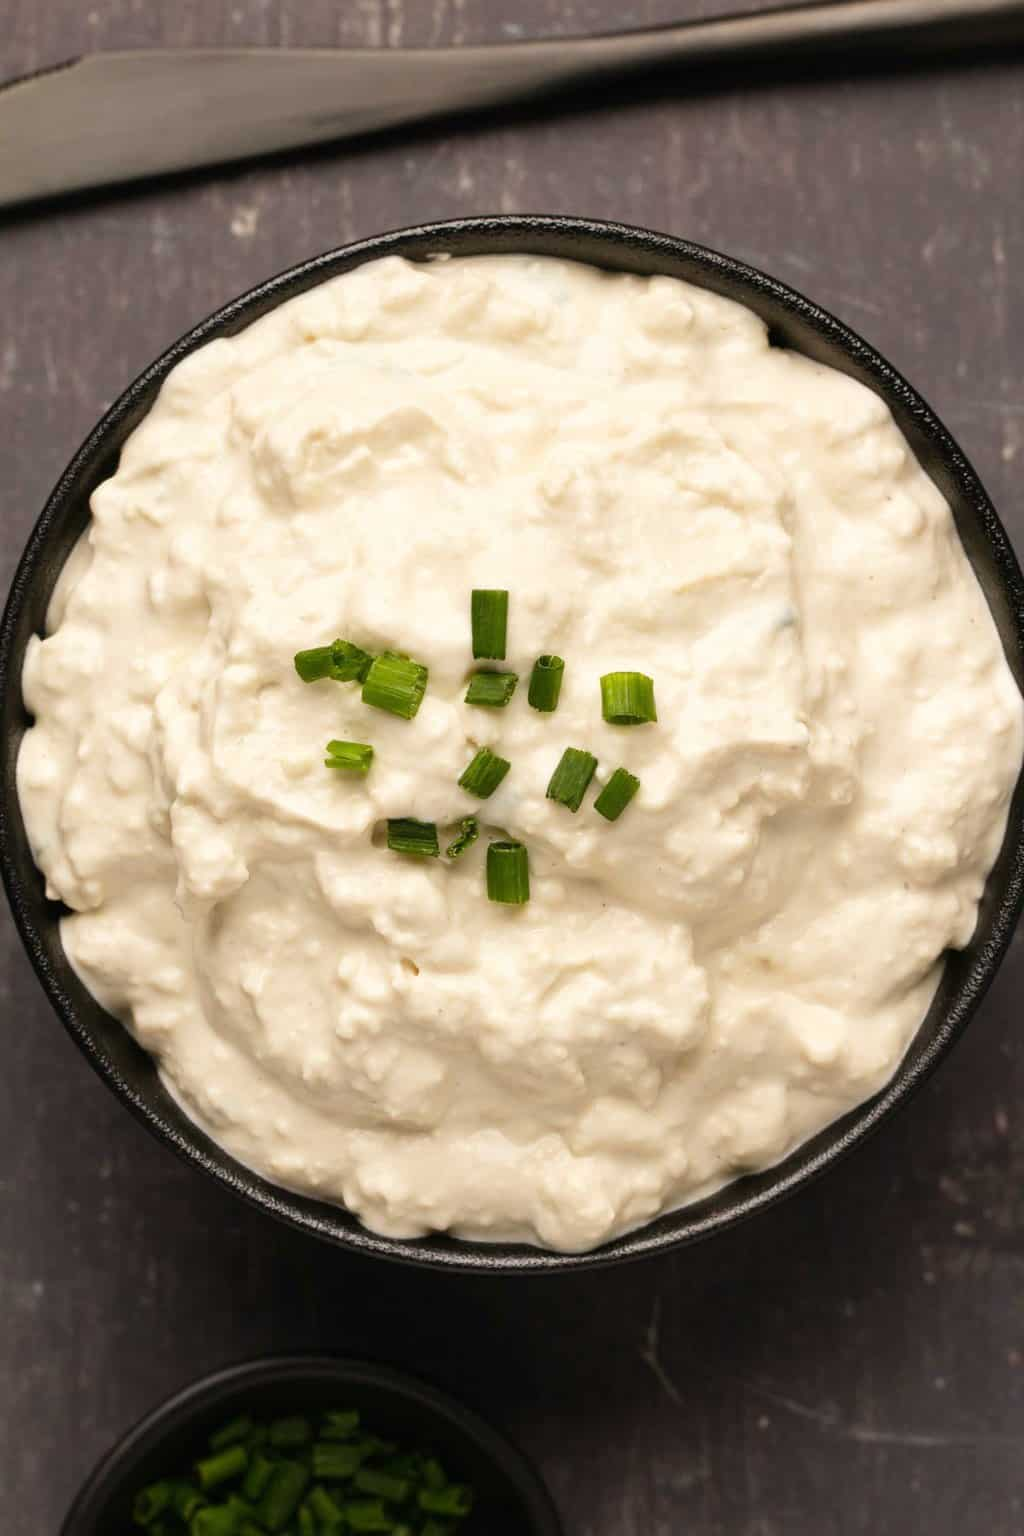 Vegan cottage cheese topped with chopped chives in a black bowl.